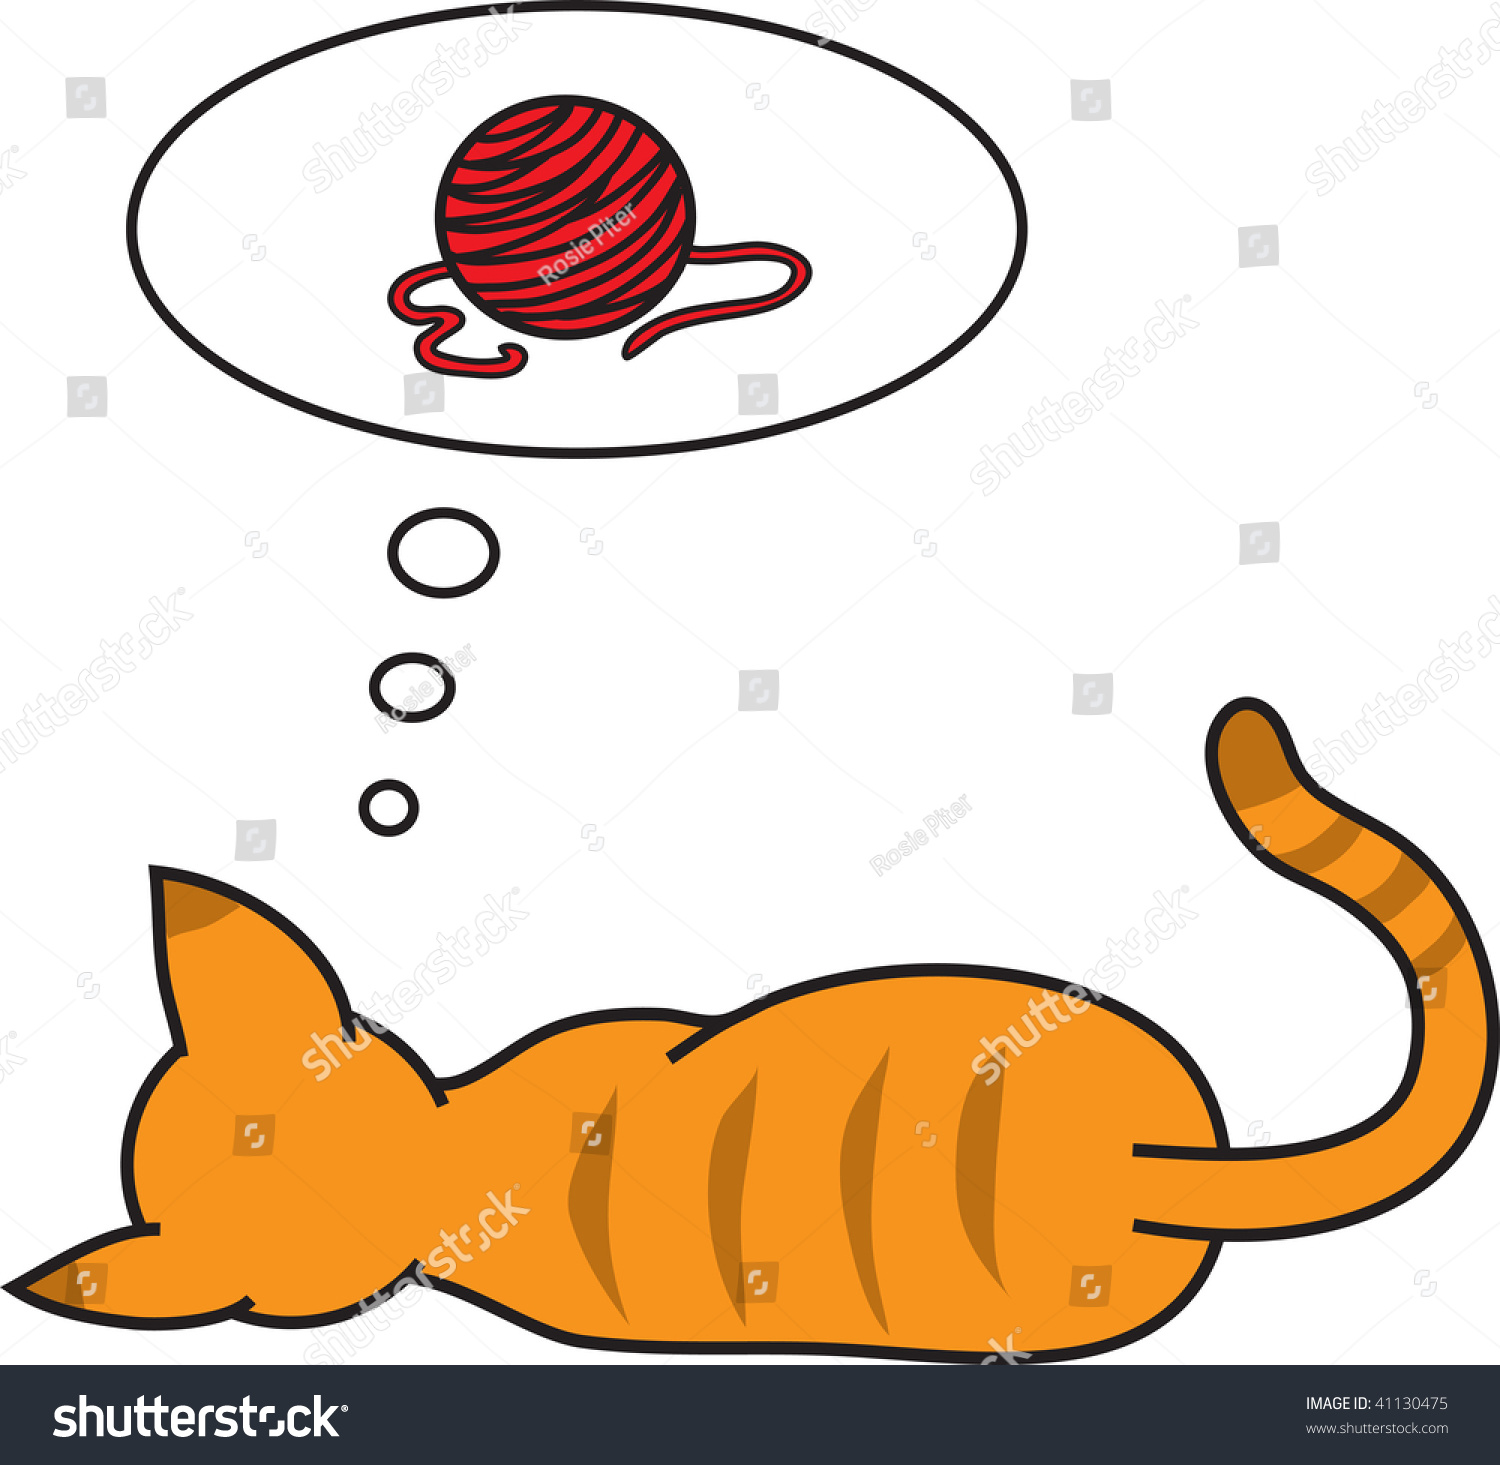 clip art illustration cat dreaming ball stock illustration 41130475 rh shutterstock com girl dreaming clipart daydreaming clipart